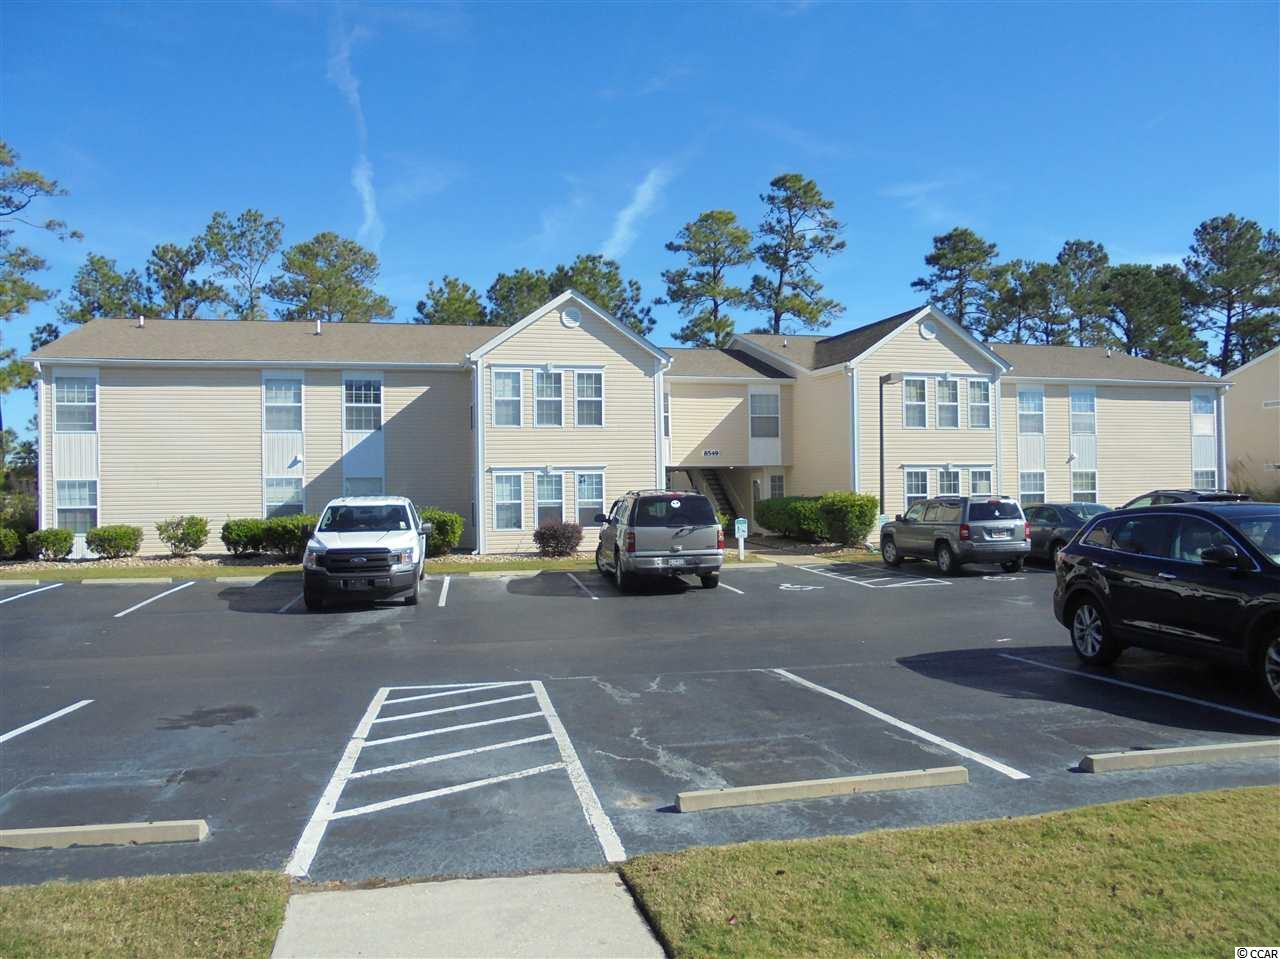 Tenant Occupied. Cannot Be Shown until After December 27, 2018. Small Complex Very Nice 2nd Floor Condo with a Rear view of the woods. Property Is Directly from the pool with quick access to pool by walkway. SQUARE FOOTAGE IS APPROXIMATE AND NOT GUARANTEED. BUYER IS RESPONSIBLE FOR VERIFICATION.